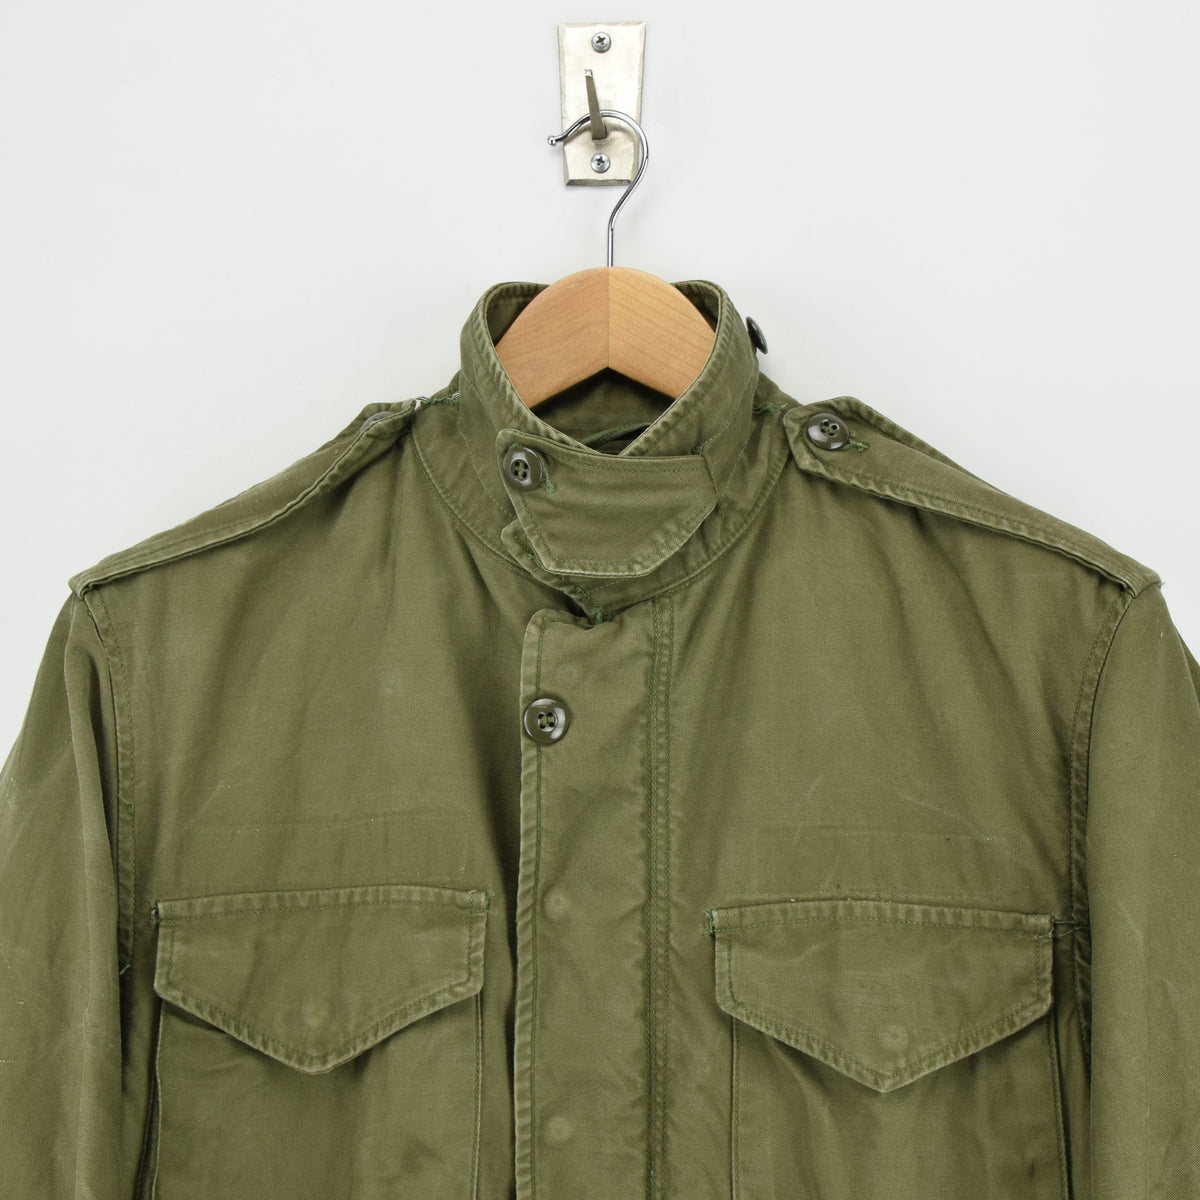 Vintage 50s M-1951 Korean War US Army Field Jacket Olive Green Conmar Zip M chest